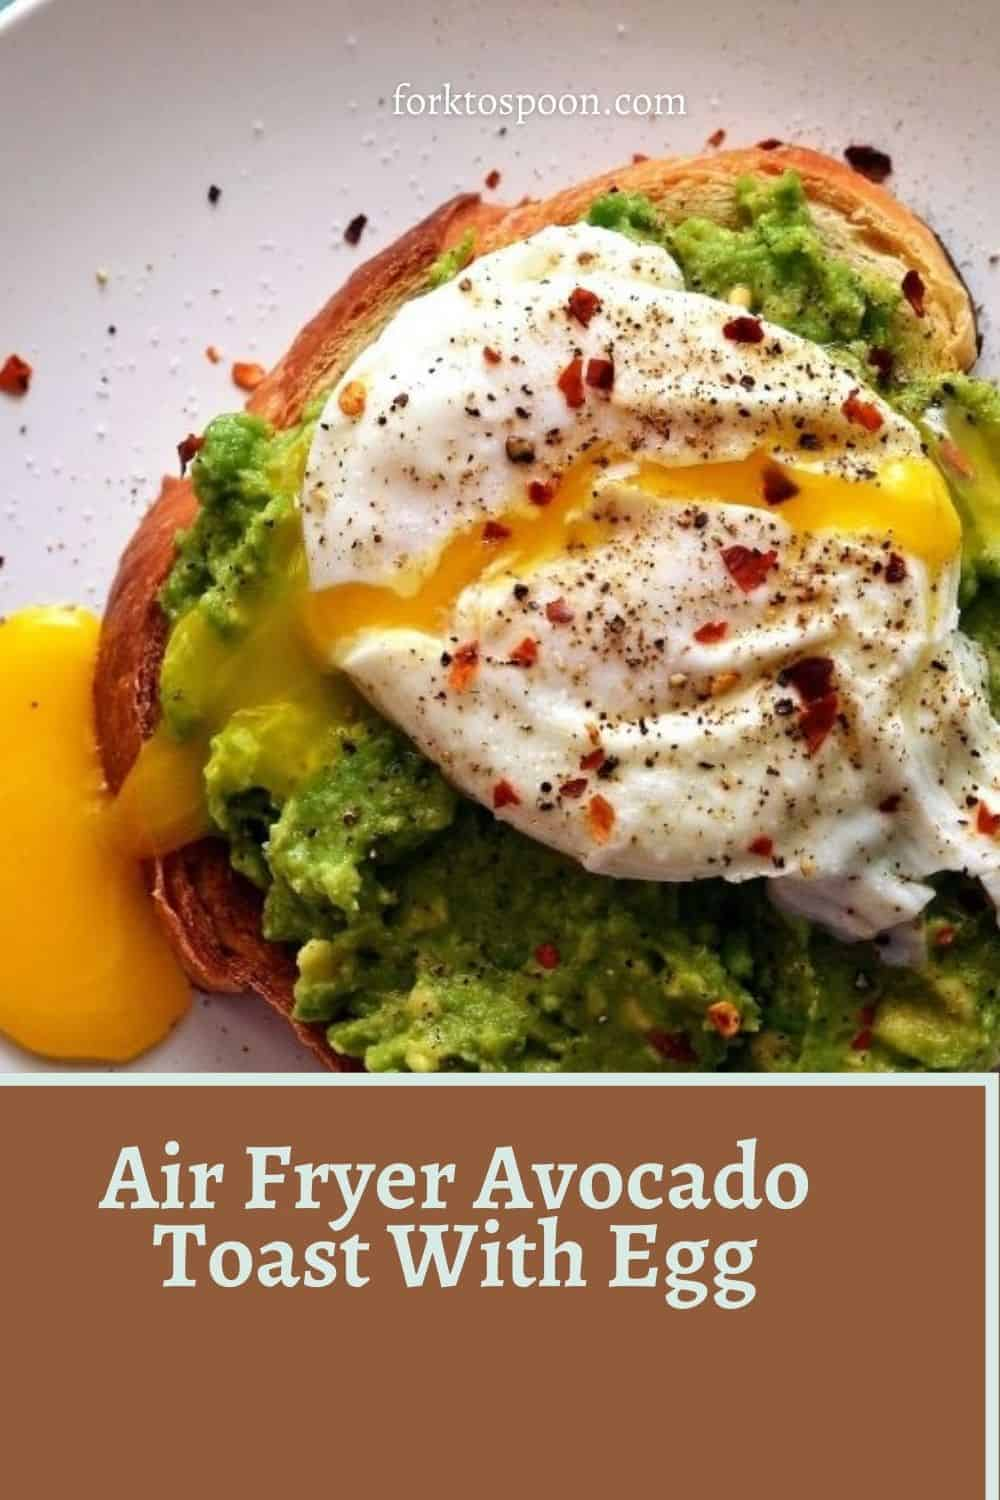 Air Fryer Avocado Toast With Egg